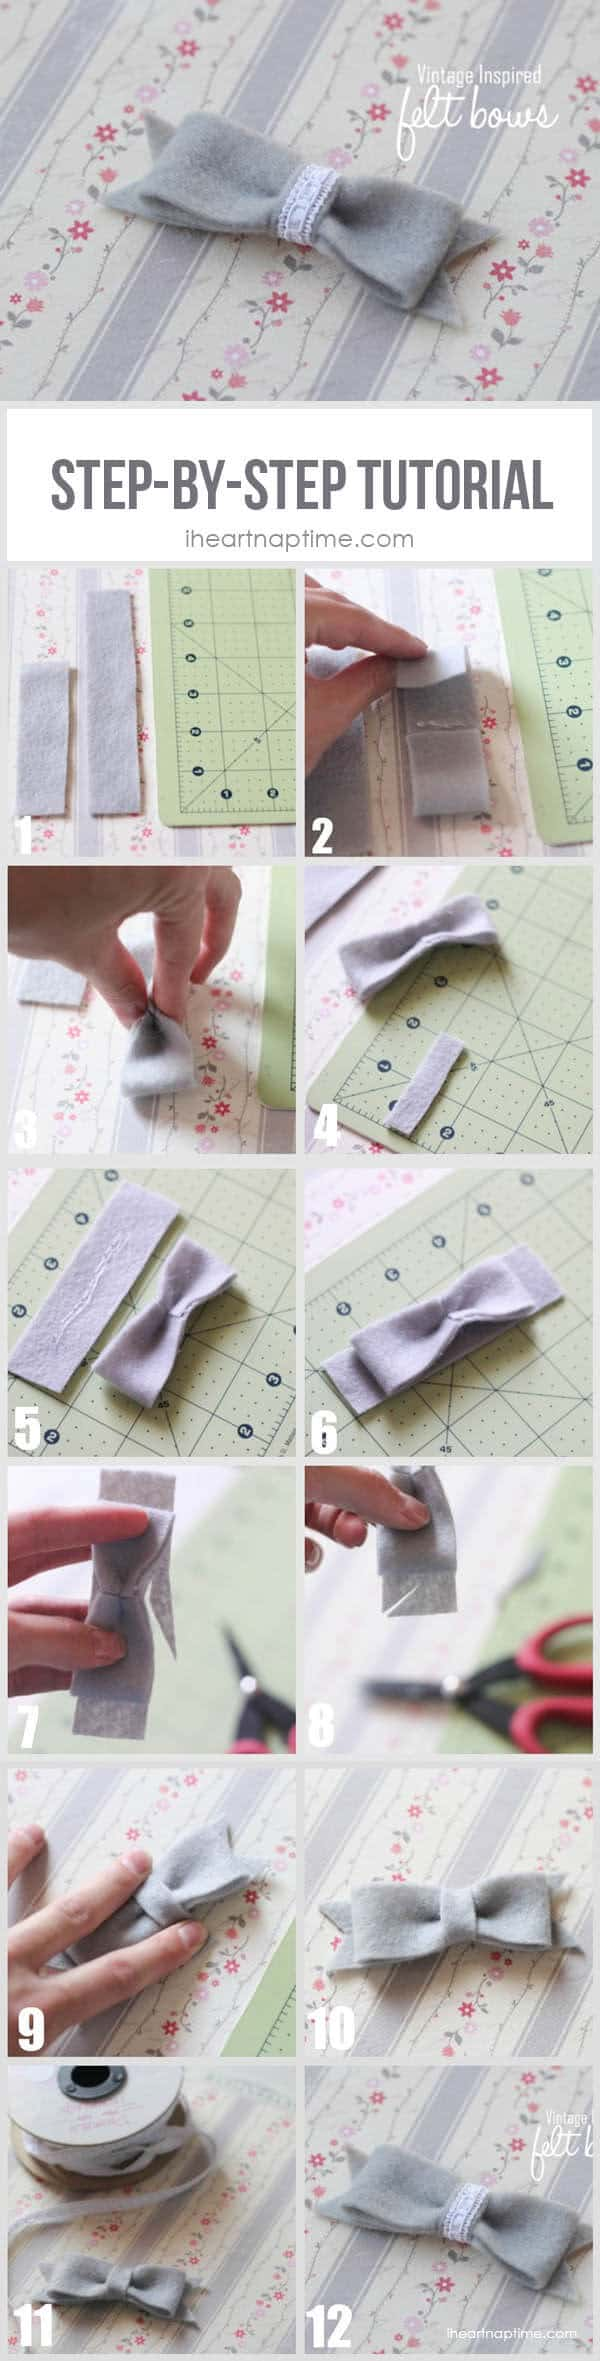 Felt bow step-by-step tutorial on I Heart Nap Time